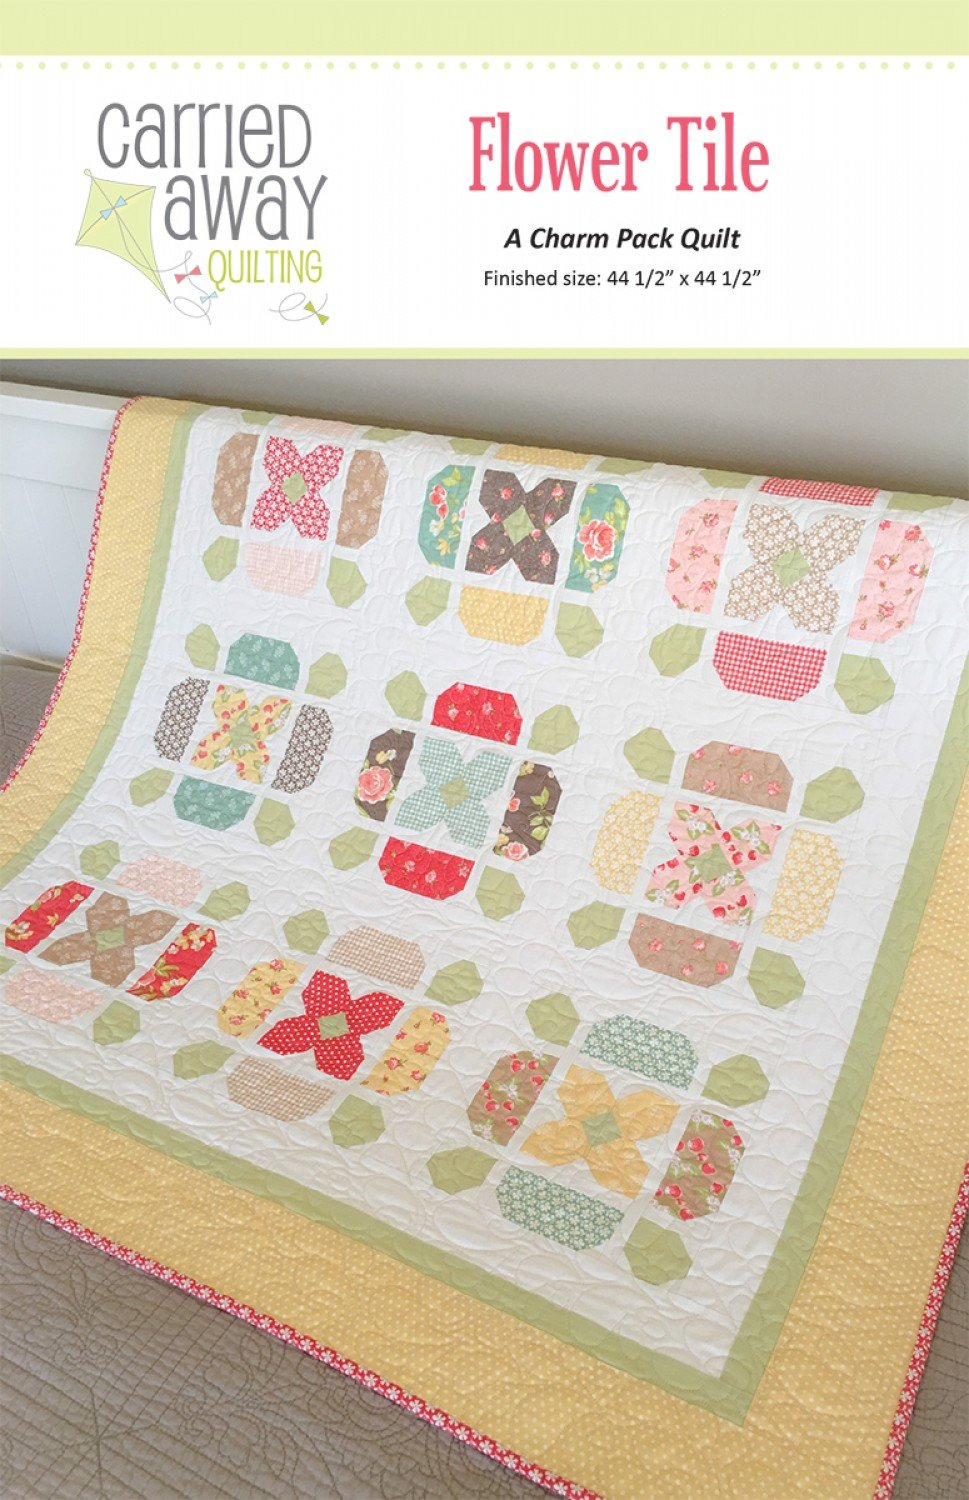 Flower Tile By Taunja Kelvington From Carried Away Quilting